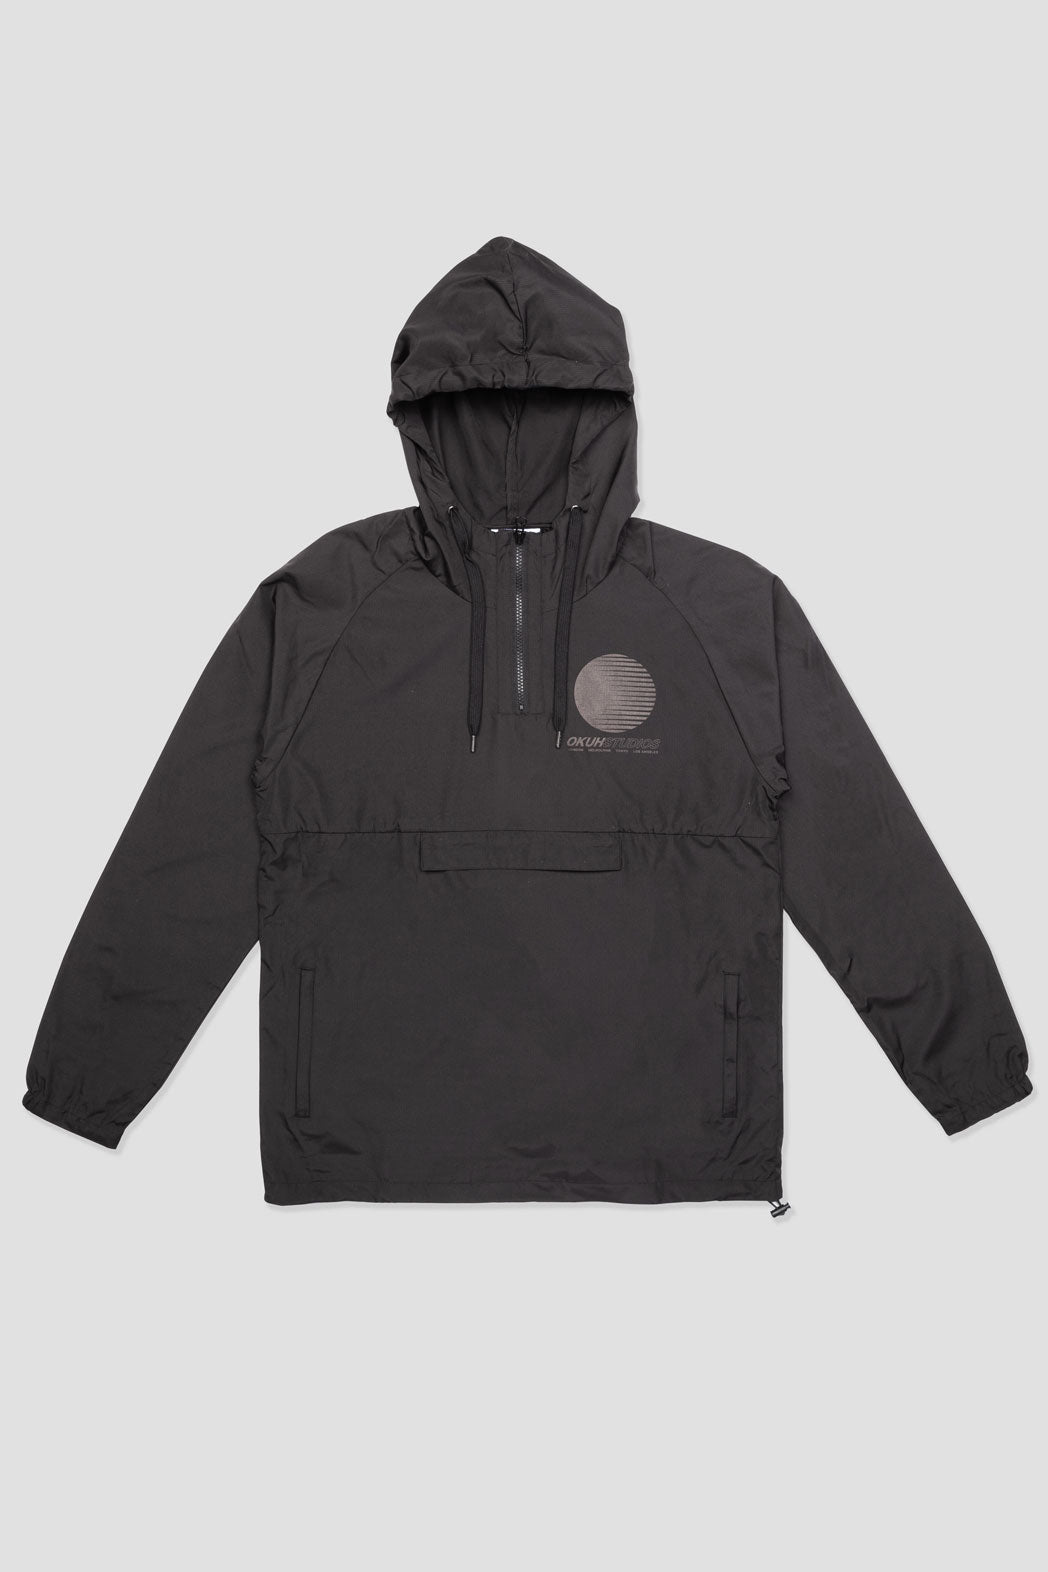 Lunar - Grey Over Head Jacket